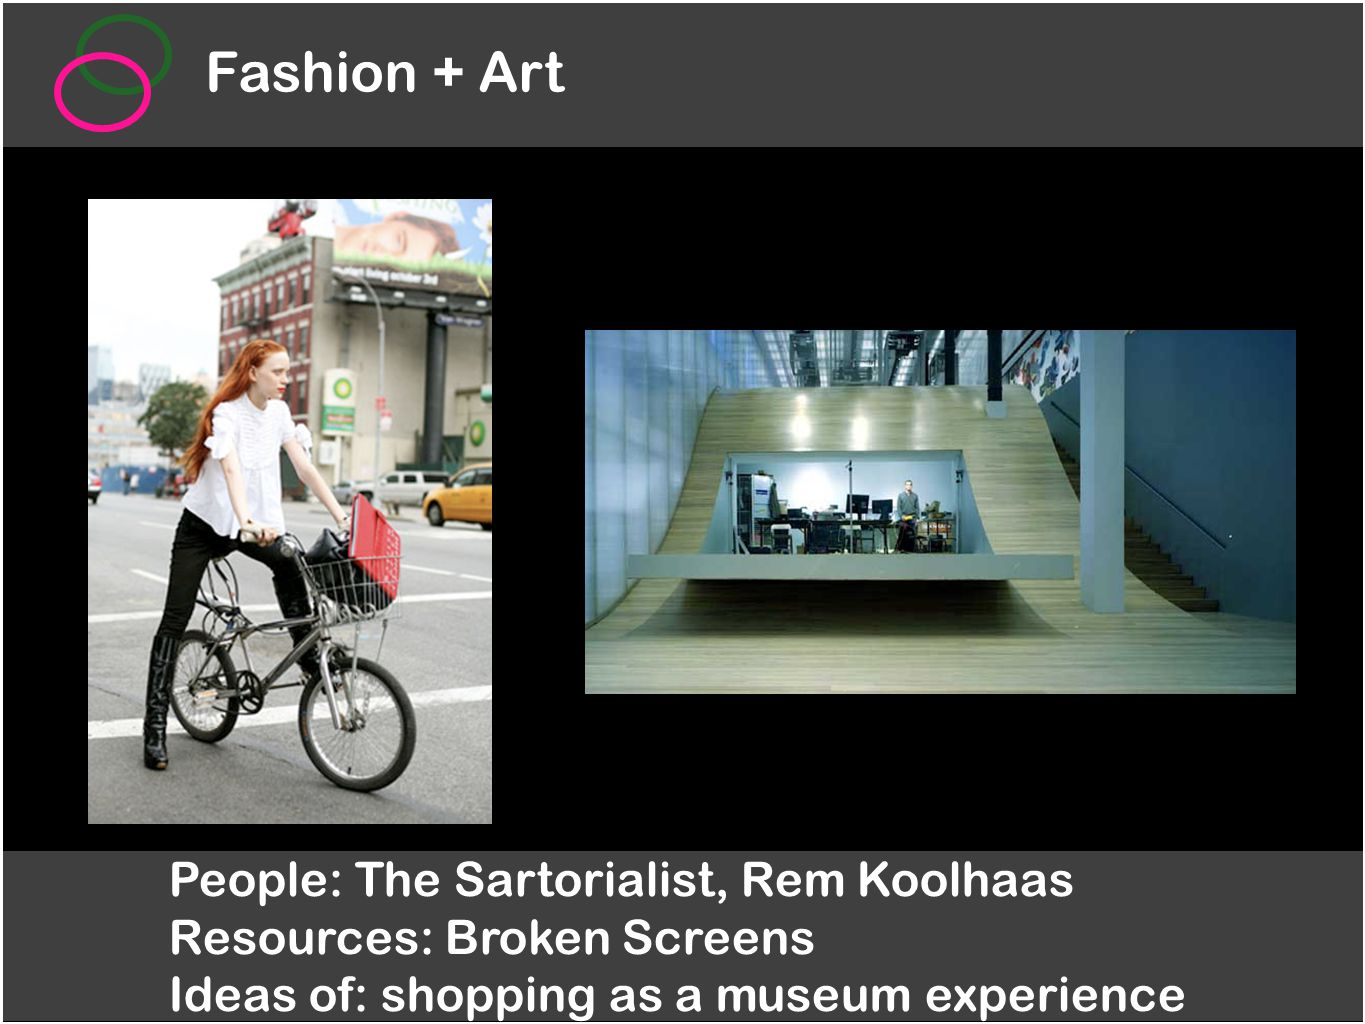 Fashion + Art People: The Sartorialist, Rem Koolhaas Resources: Broken Screens Ideas of: shopping as a museum experience